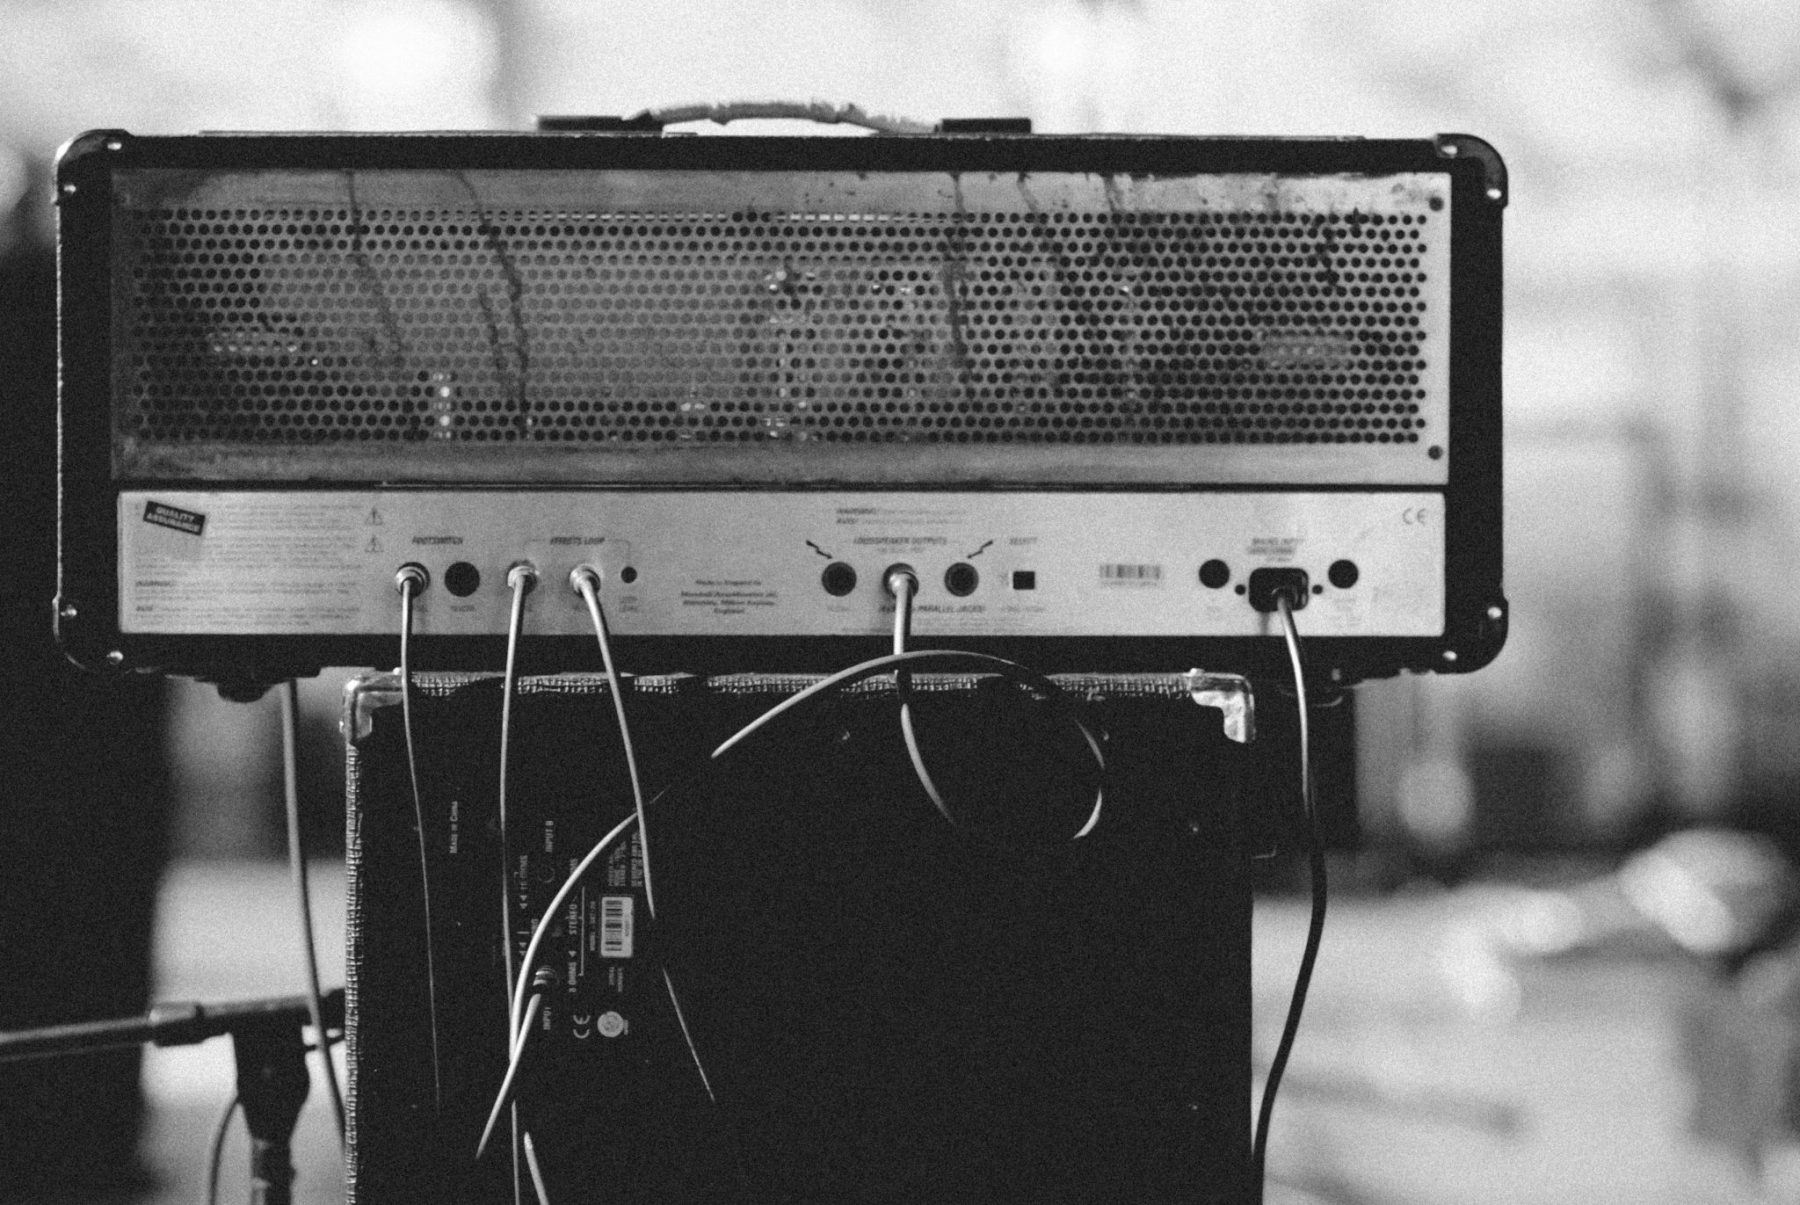 amp-with-wires-sticking-out